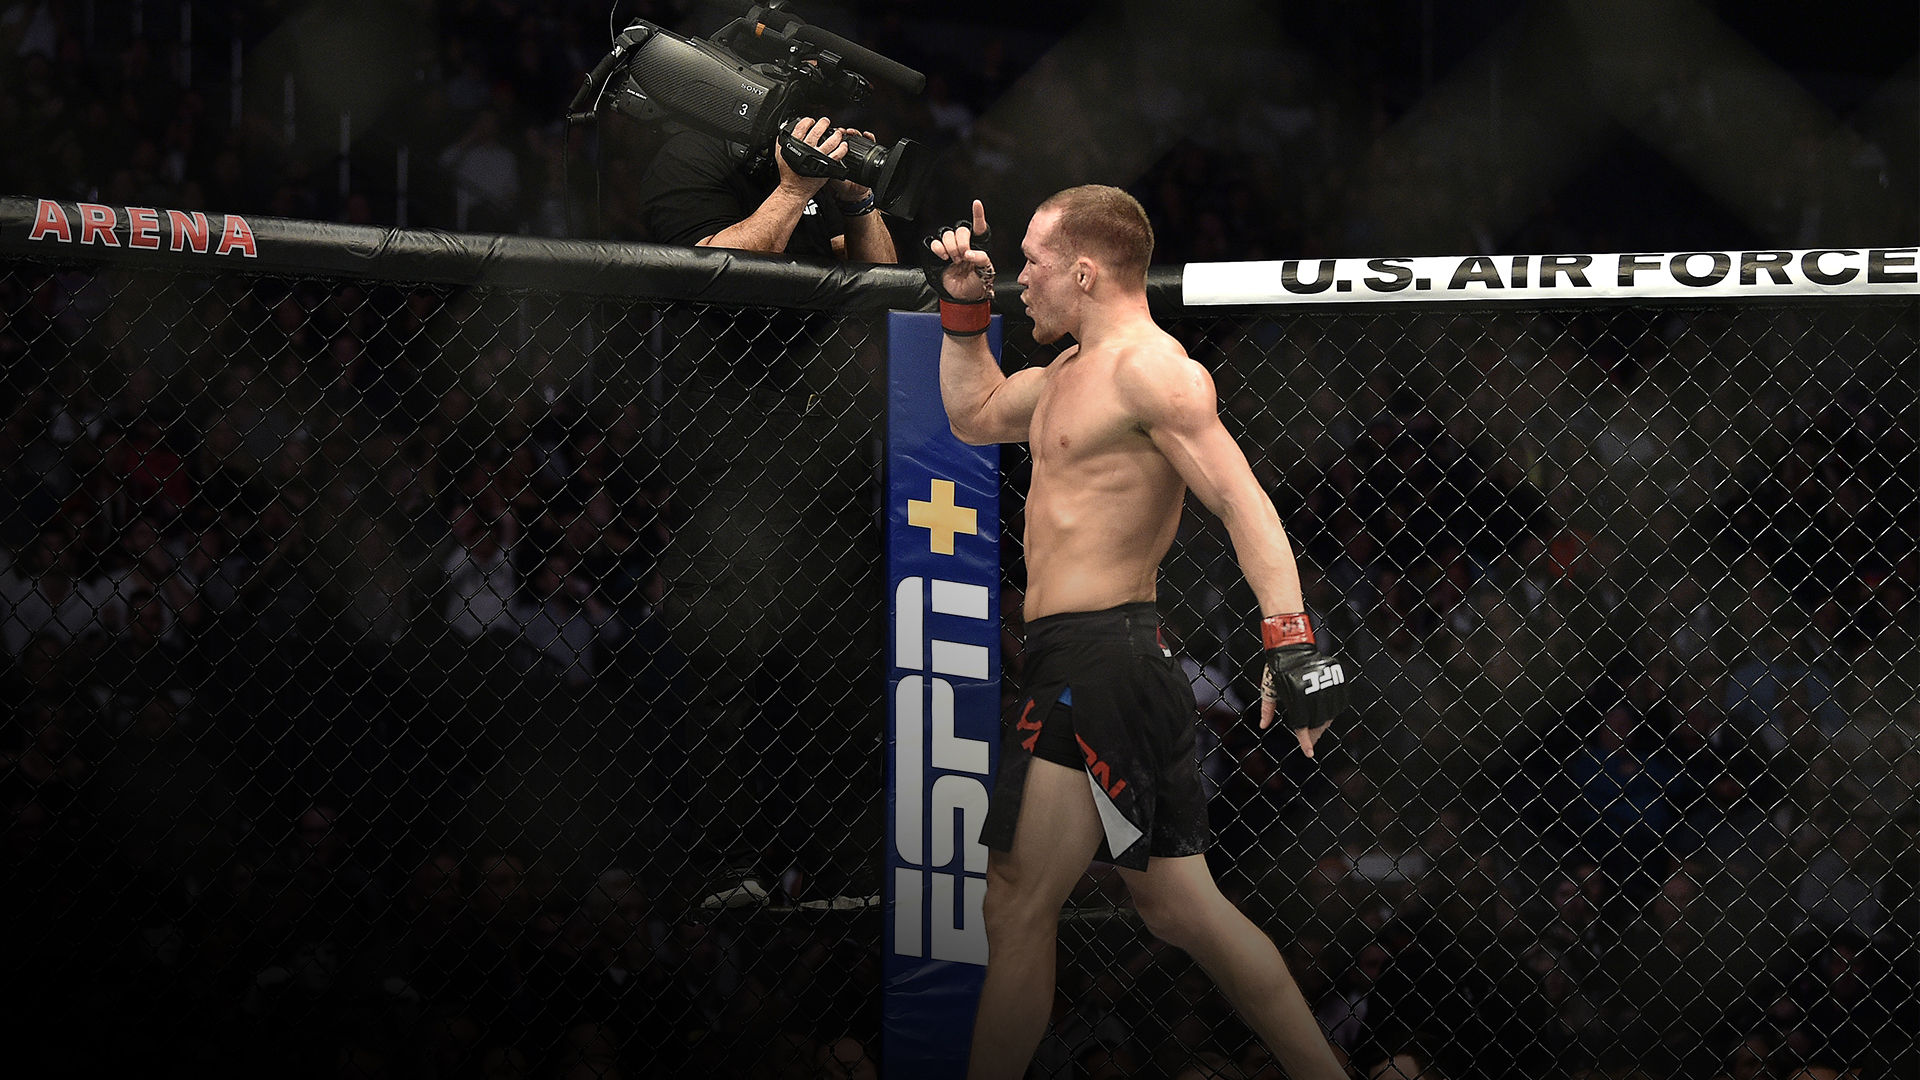 Petr Yan of Russia celebrates his victory in the octagon during the UFC 245 event at T-Mobile Arena on December 14, 2019 in Las Vegas, Nevada. (Photo by Chris Unger/Zuffa LLC)